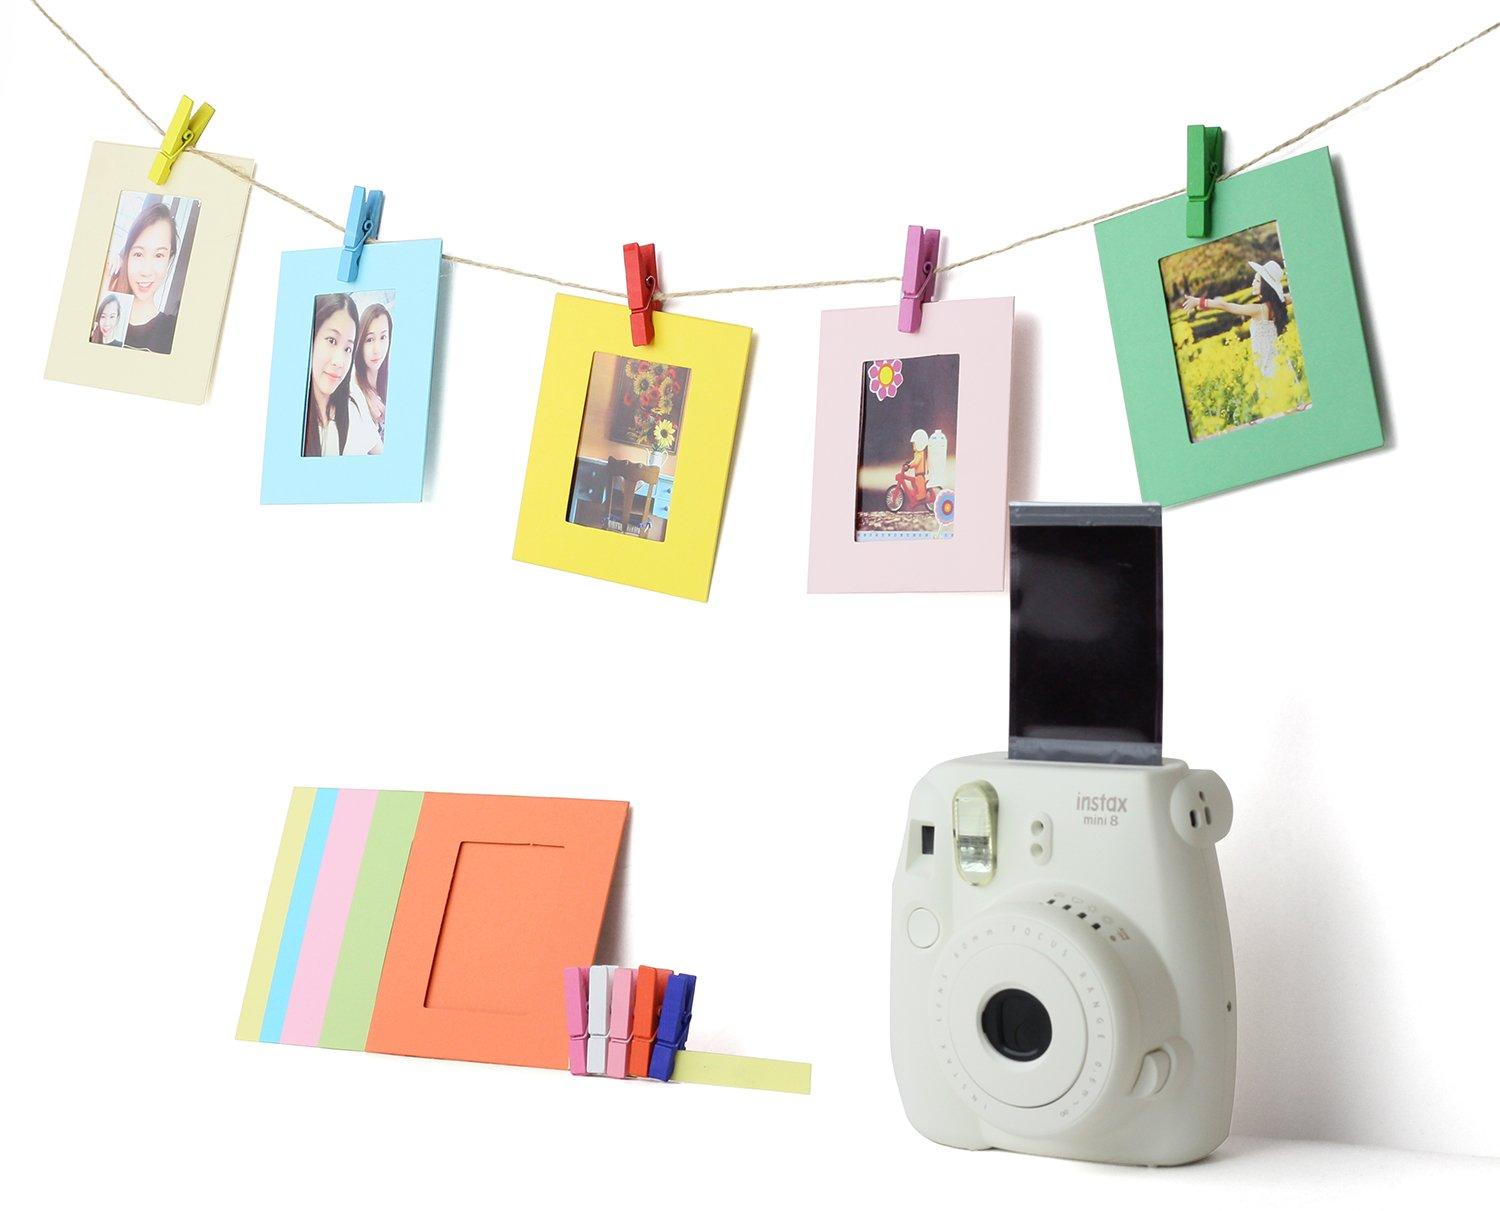 5 in 1 Giant Colorful Bundle Kit Accessories for Fujifilm Instax Mini 9/8 Camera - Assorted Accessory Pack of 120 Sticker Frames + 10 Plastic Desk Frames + 20 Hanging Frames + MORE by Deals Number One (Image #3)